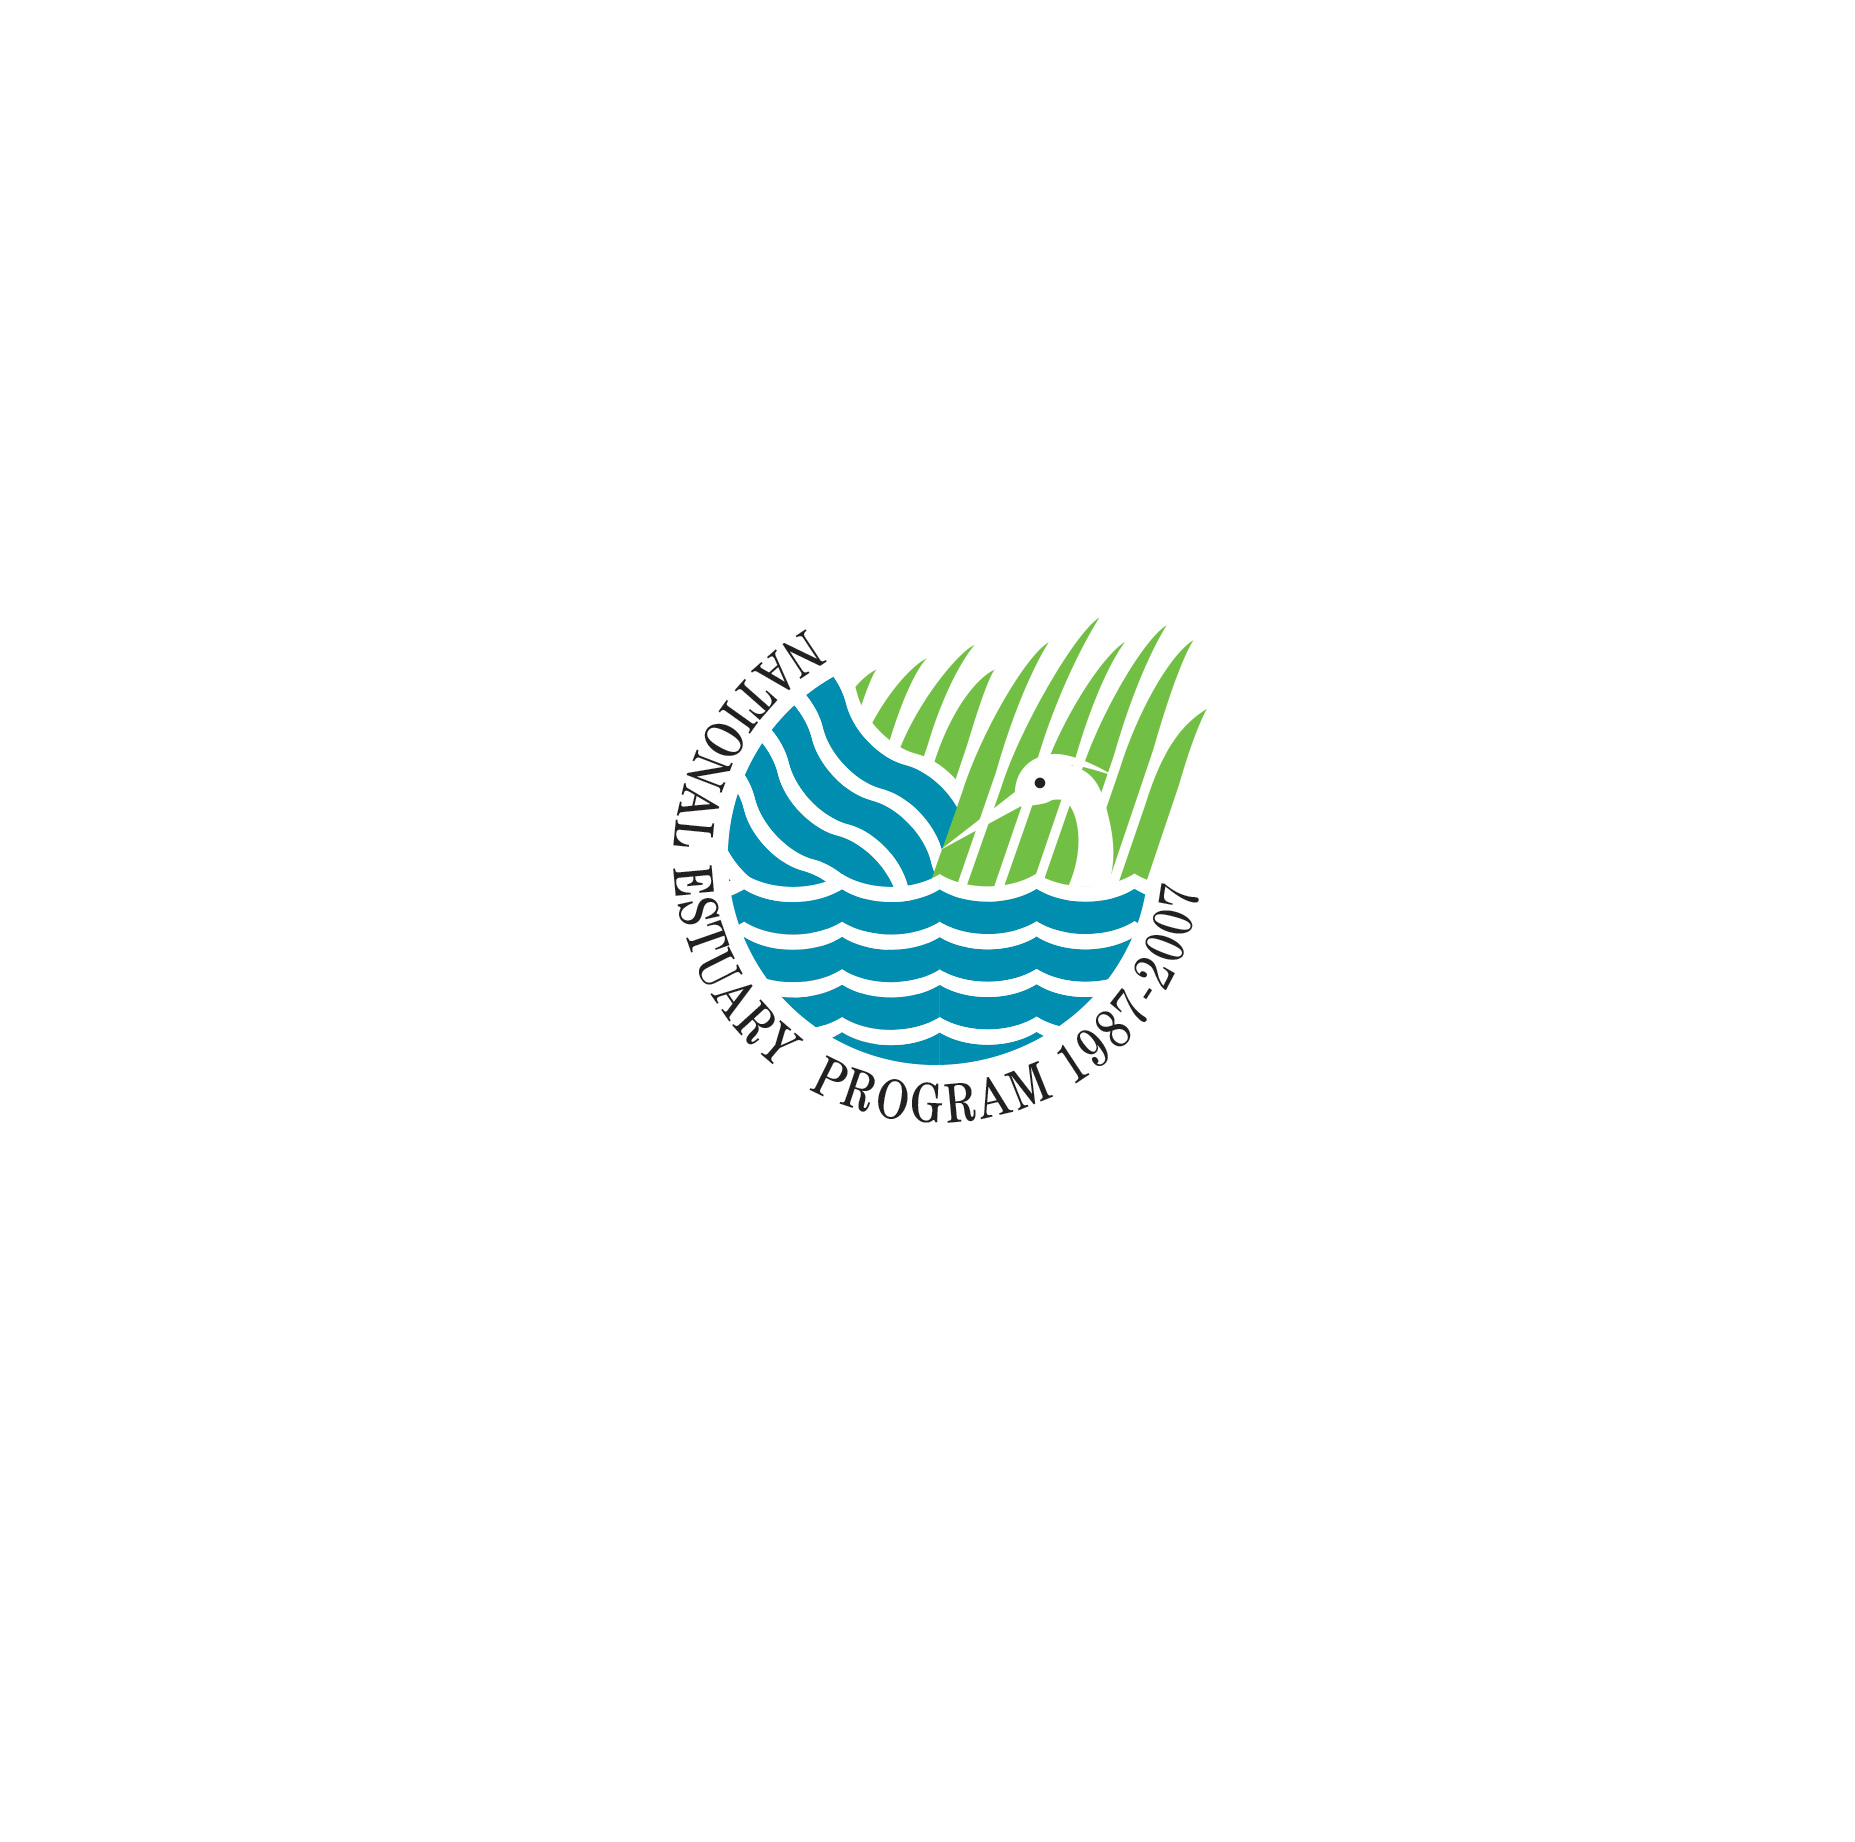 US Environment Protection Agency > National Estuaries Program 20th Anniversary Logo